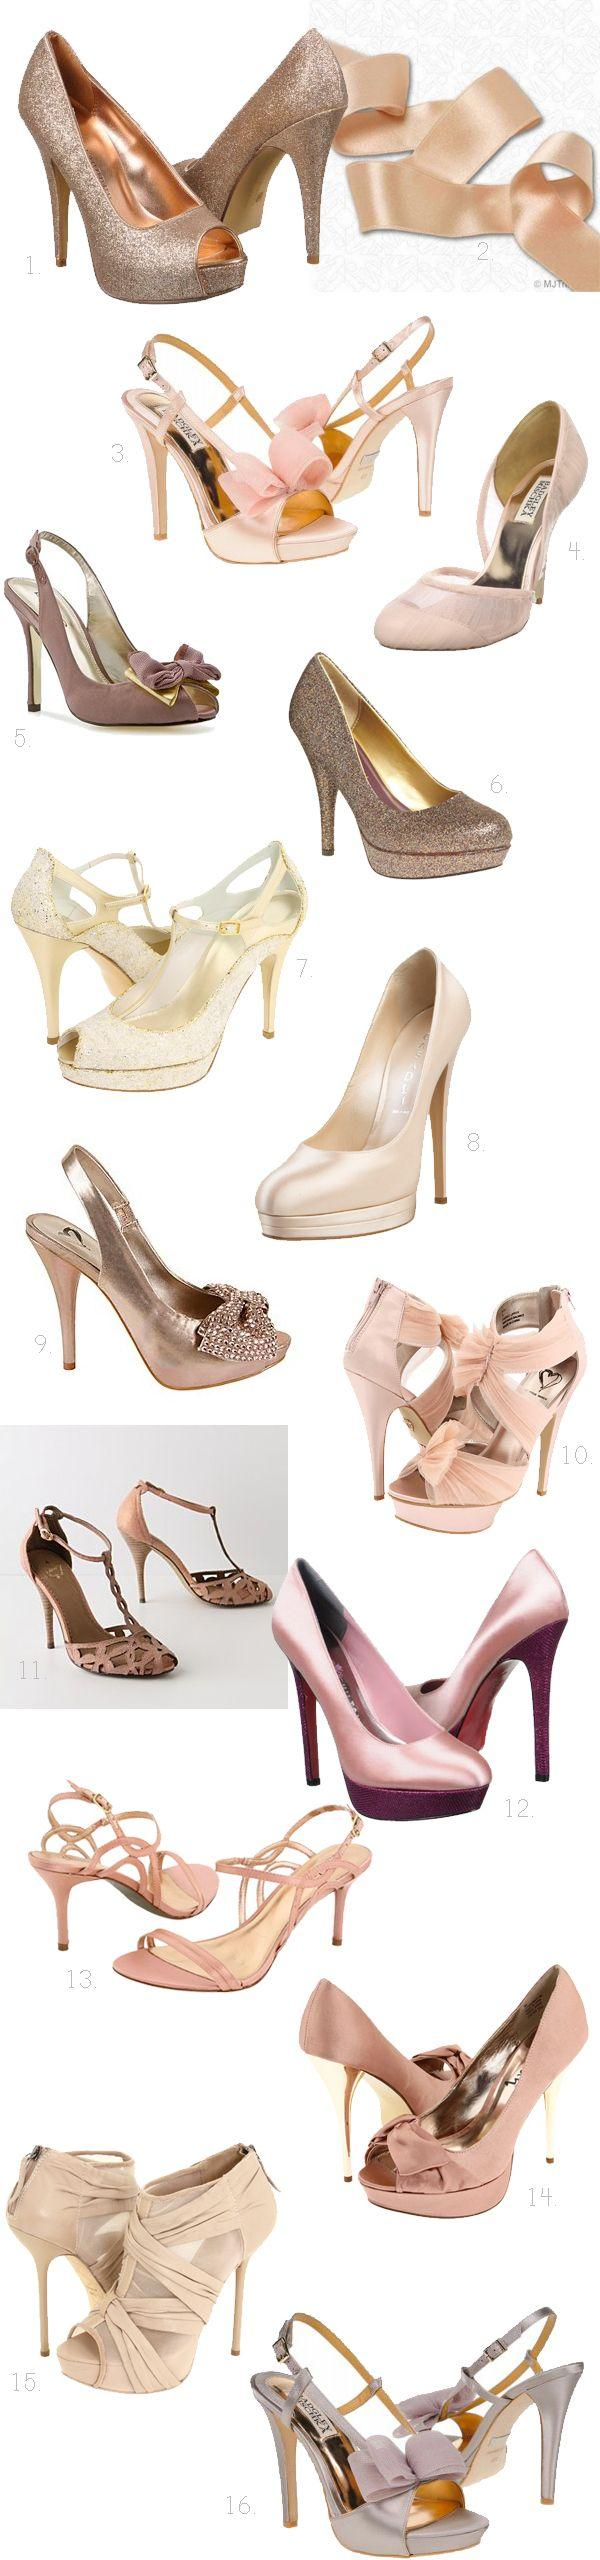 Mariage - ♥~•~♥ Wedding ►Shoes